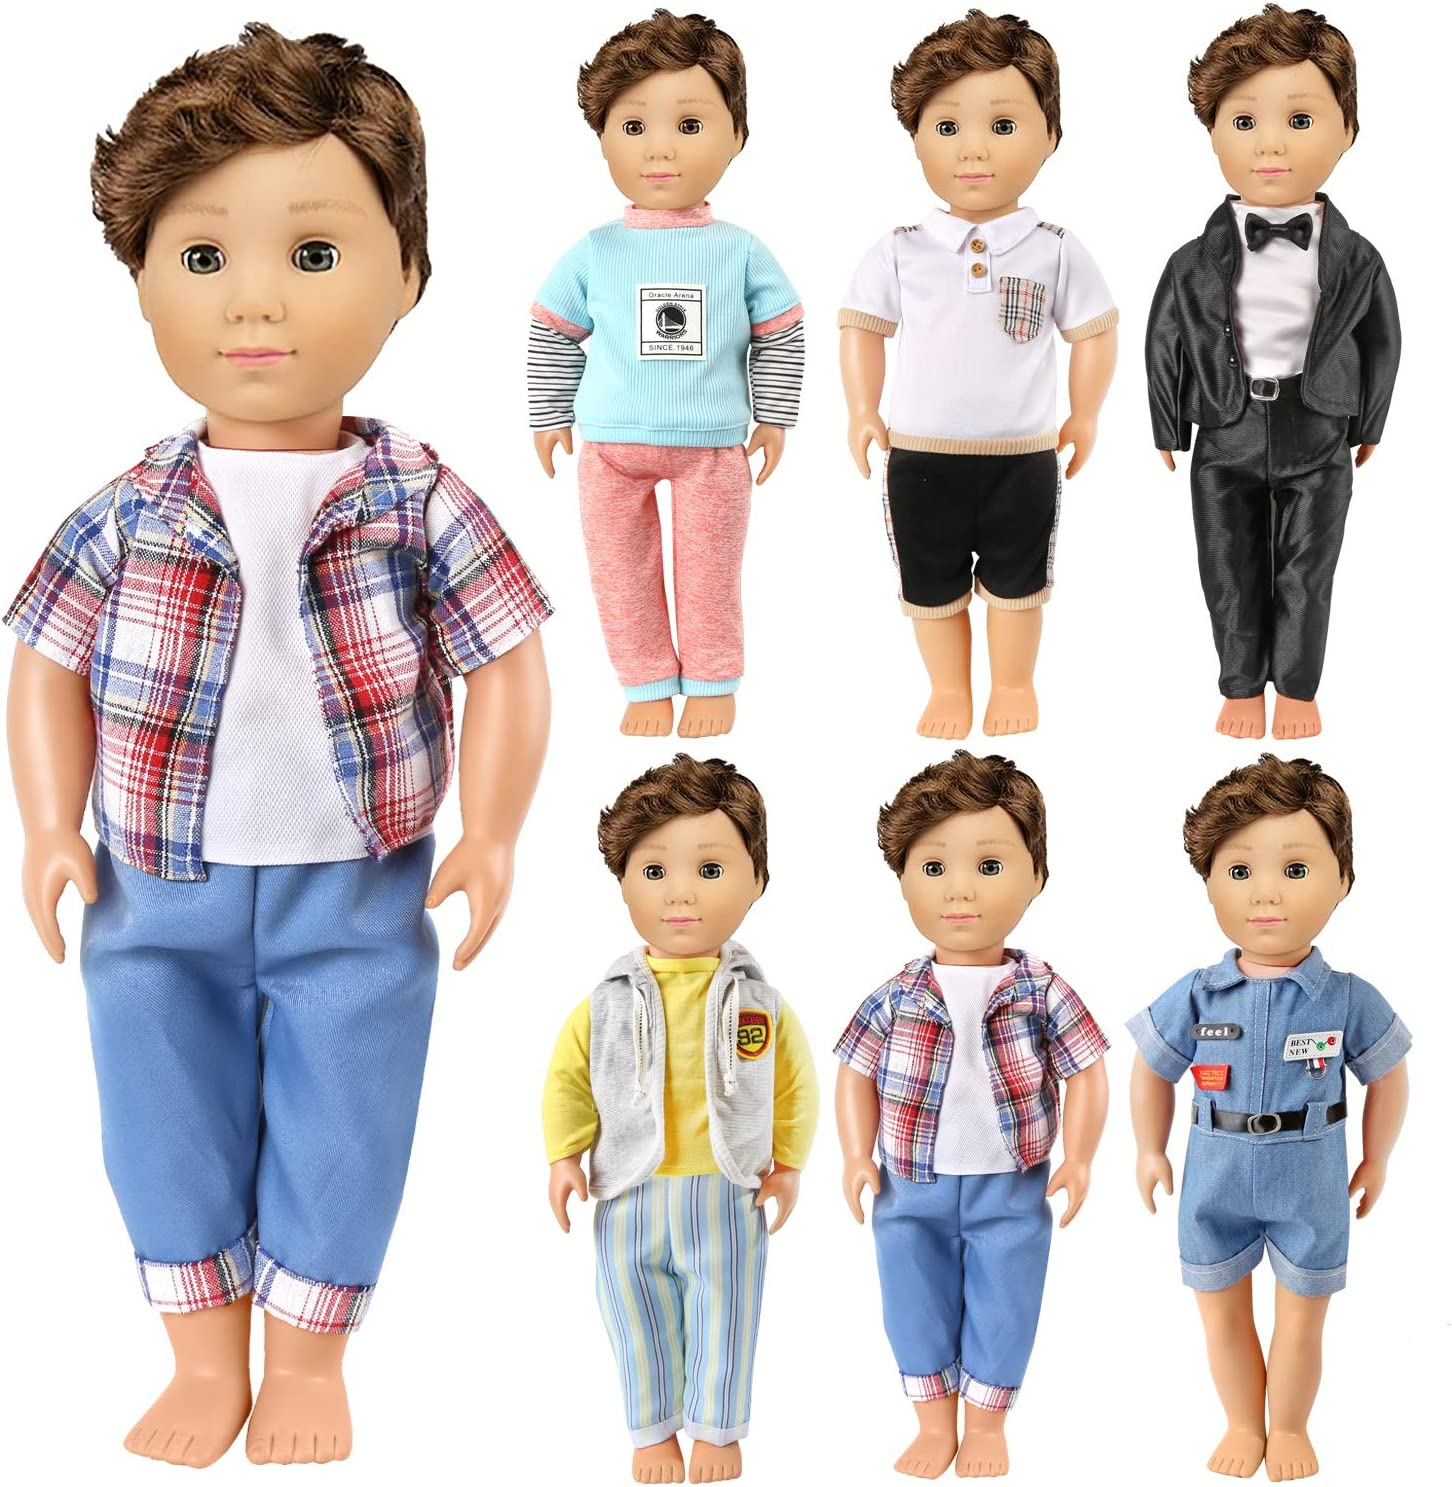 6 Sets KYToy Boys Doll Clothes 18 Inch American Doll Outfit for Logan Doll Accessories Including Fashion Jumpsuits Casual Wear Black Suit Shirts Pants Clothing